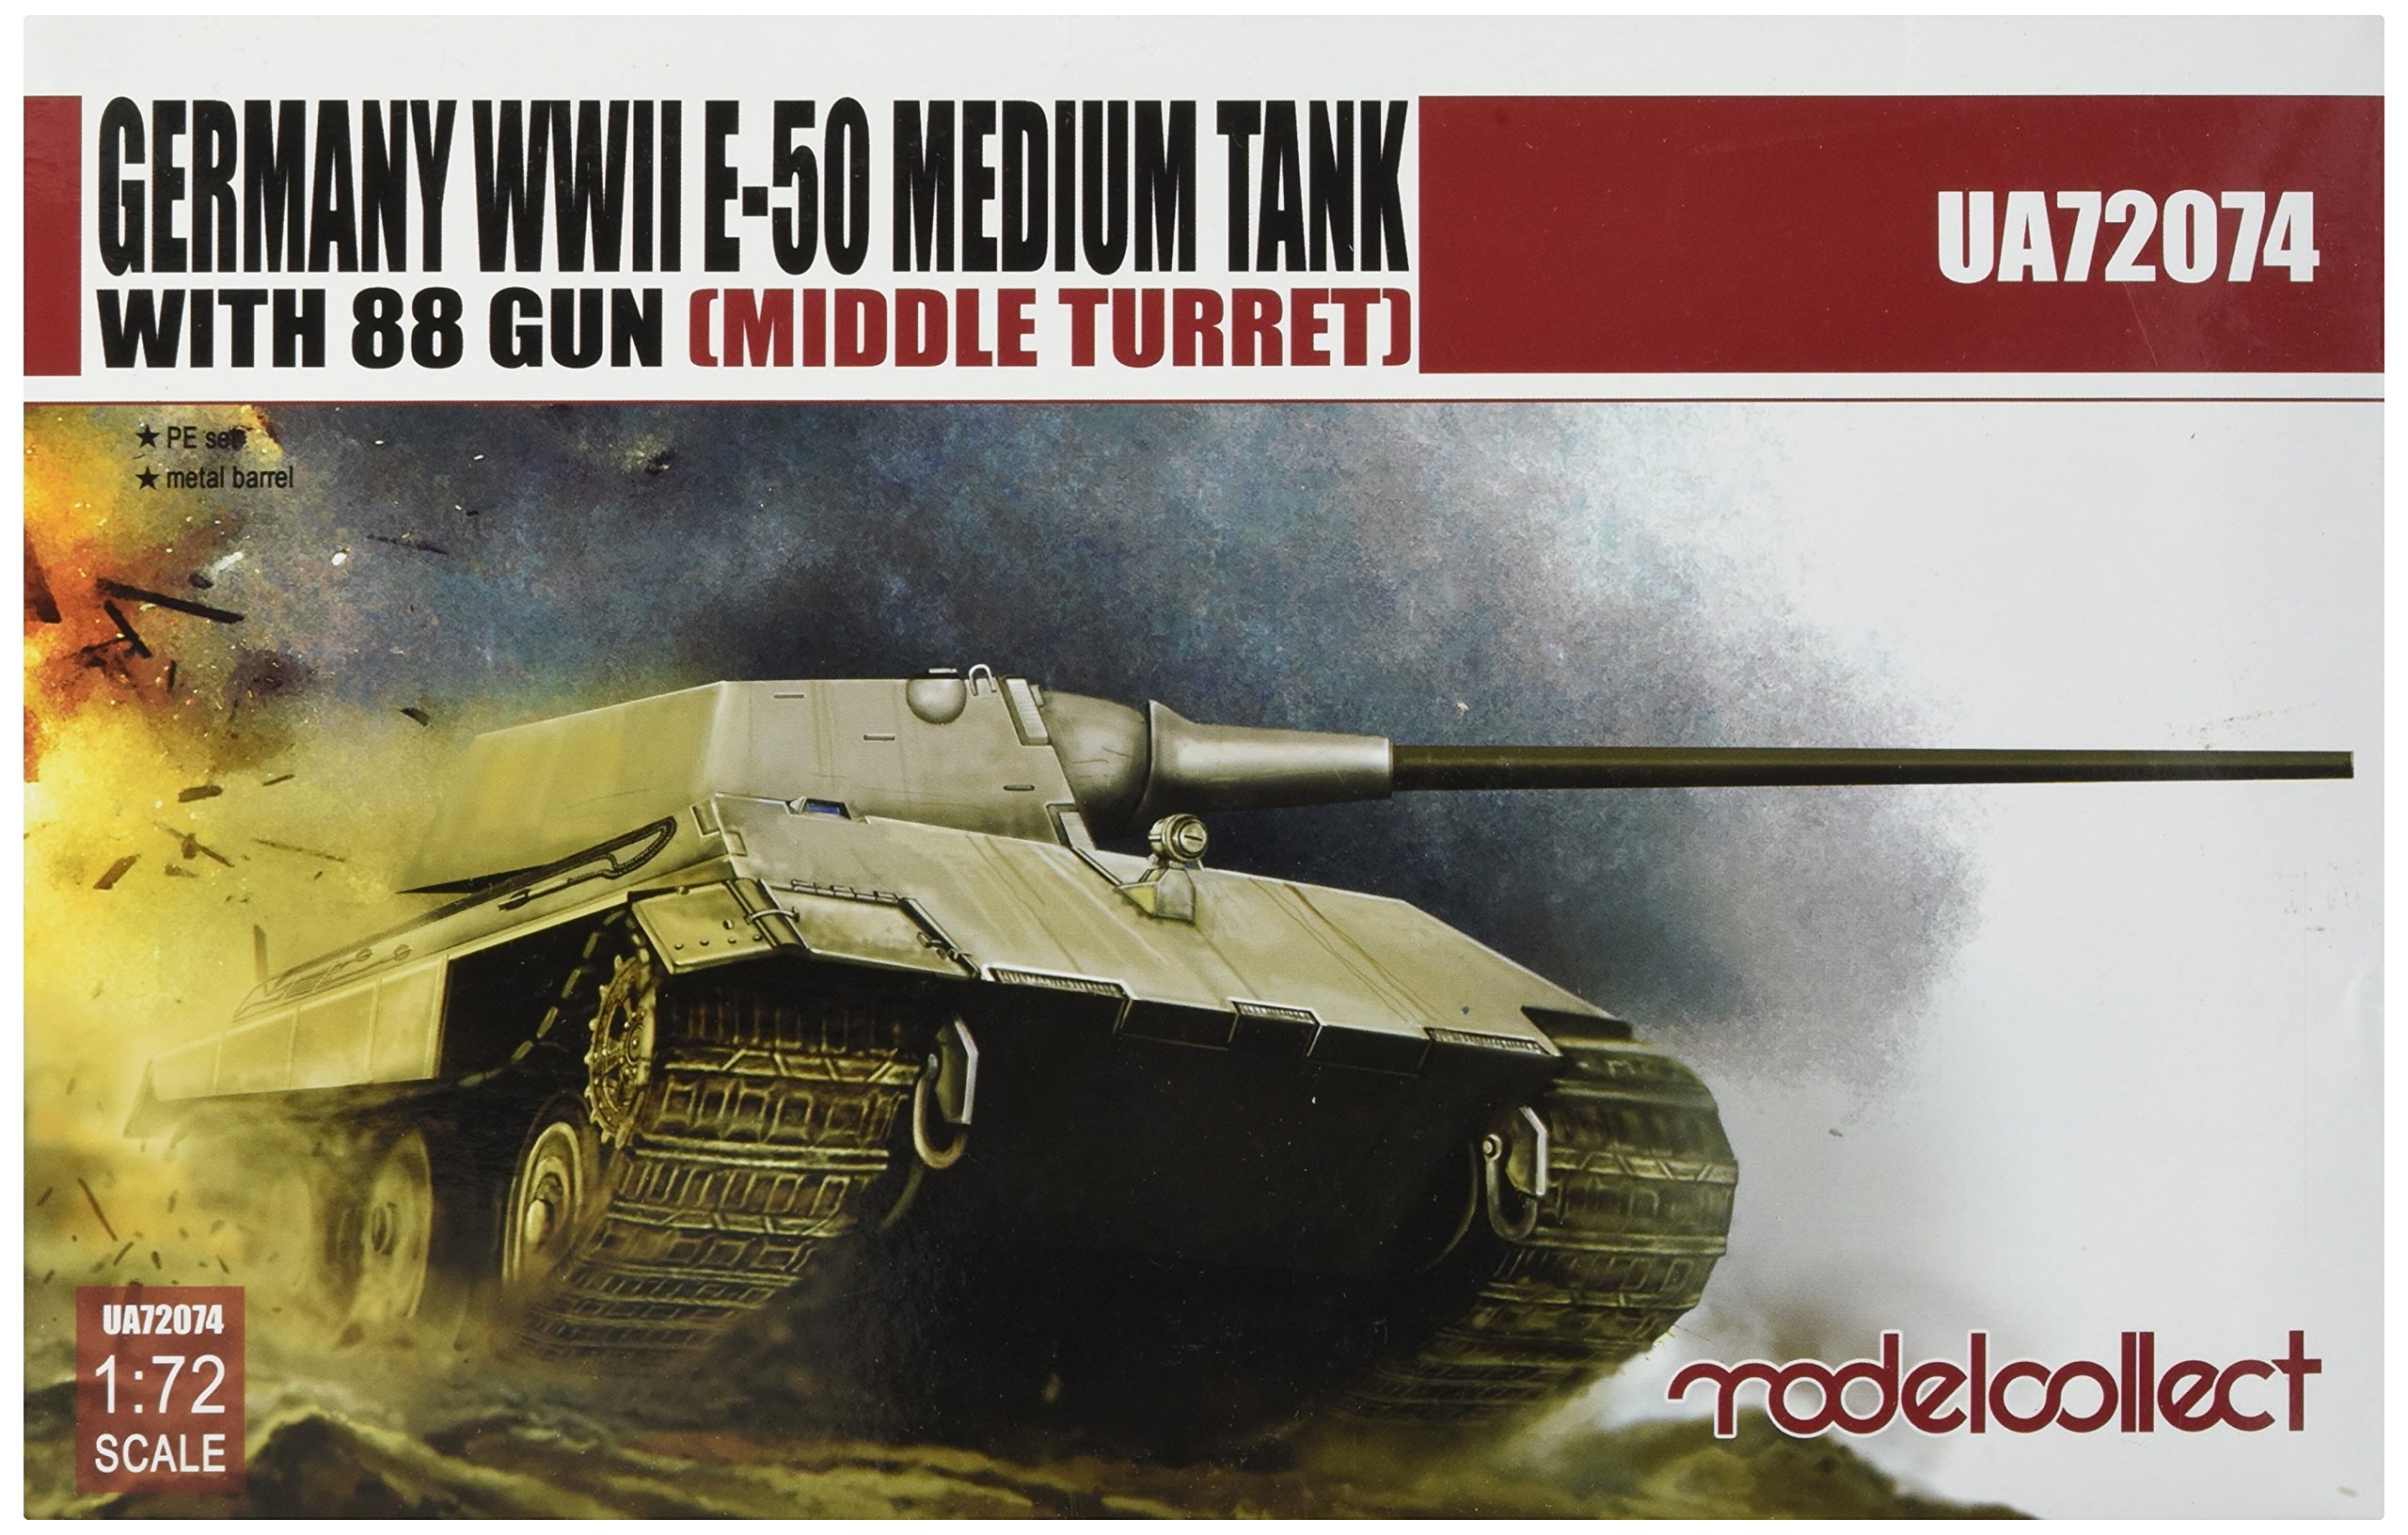 Modelcollect UA72074 Model Building kit, Germany WWII E-50 Medium Tank with 88Gun Middle Turret